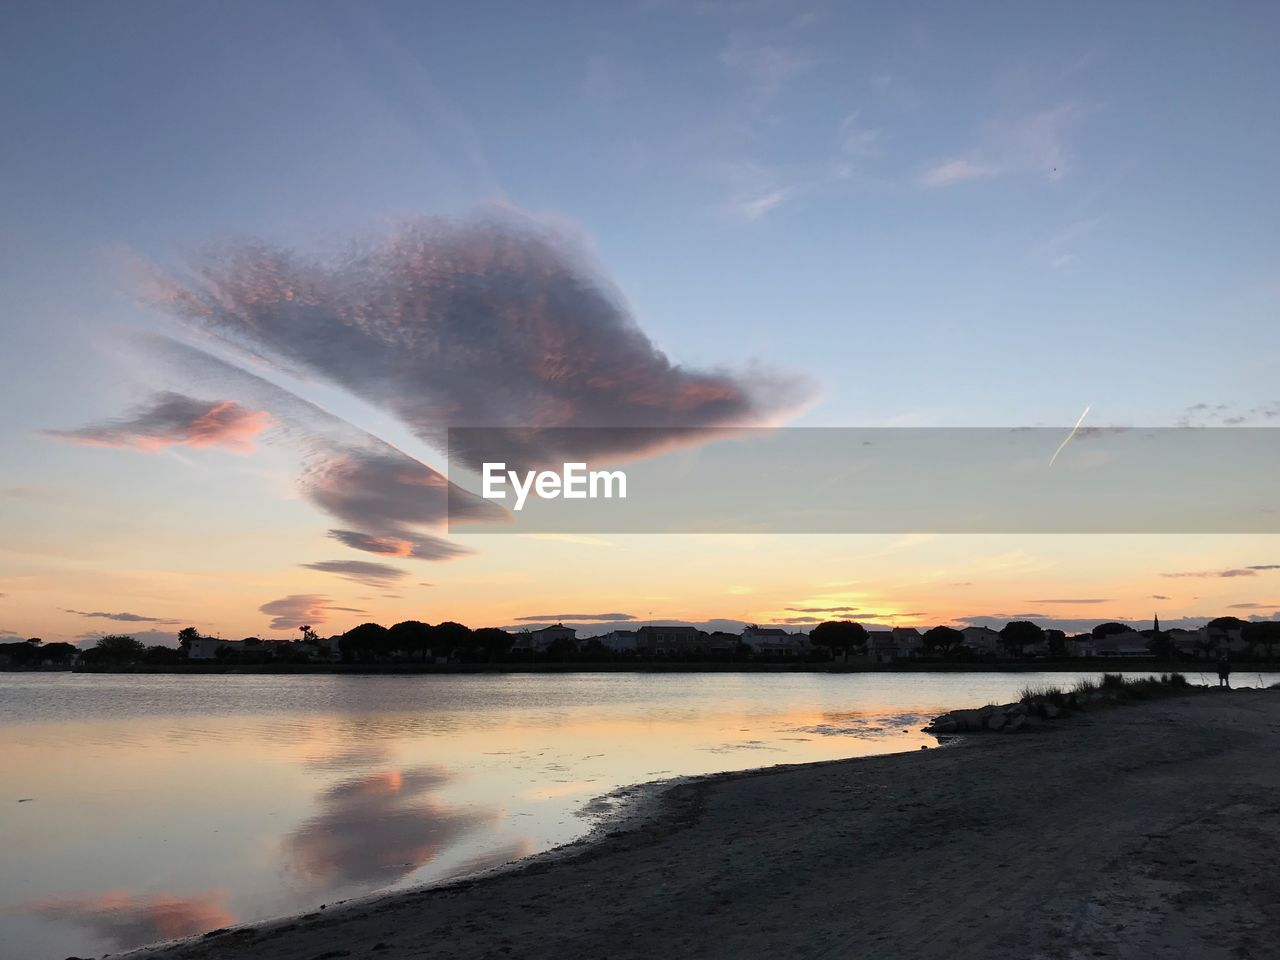 sky, sunset, water, beauty in nature, cloud - sky, tranquility, scenics - nature, orange color, tranquil scene, lake, nature, reflection, no people, silhouette, idyllic, outdoors, non-urban scene, environment, beach